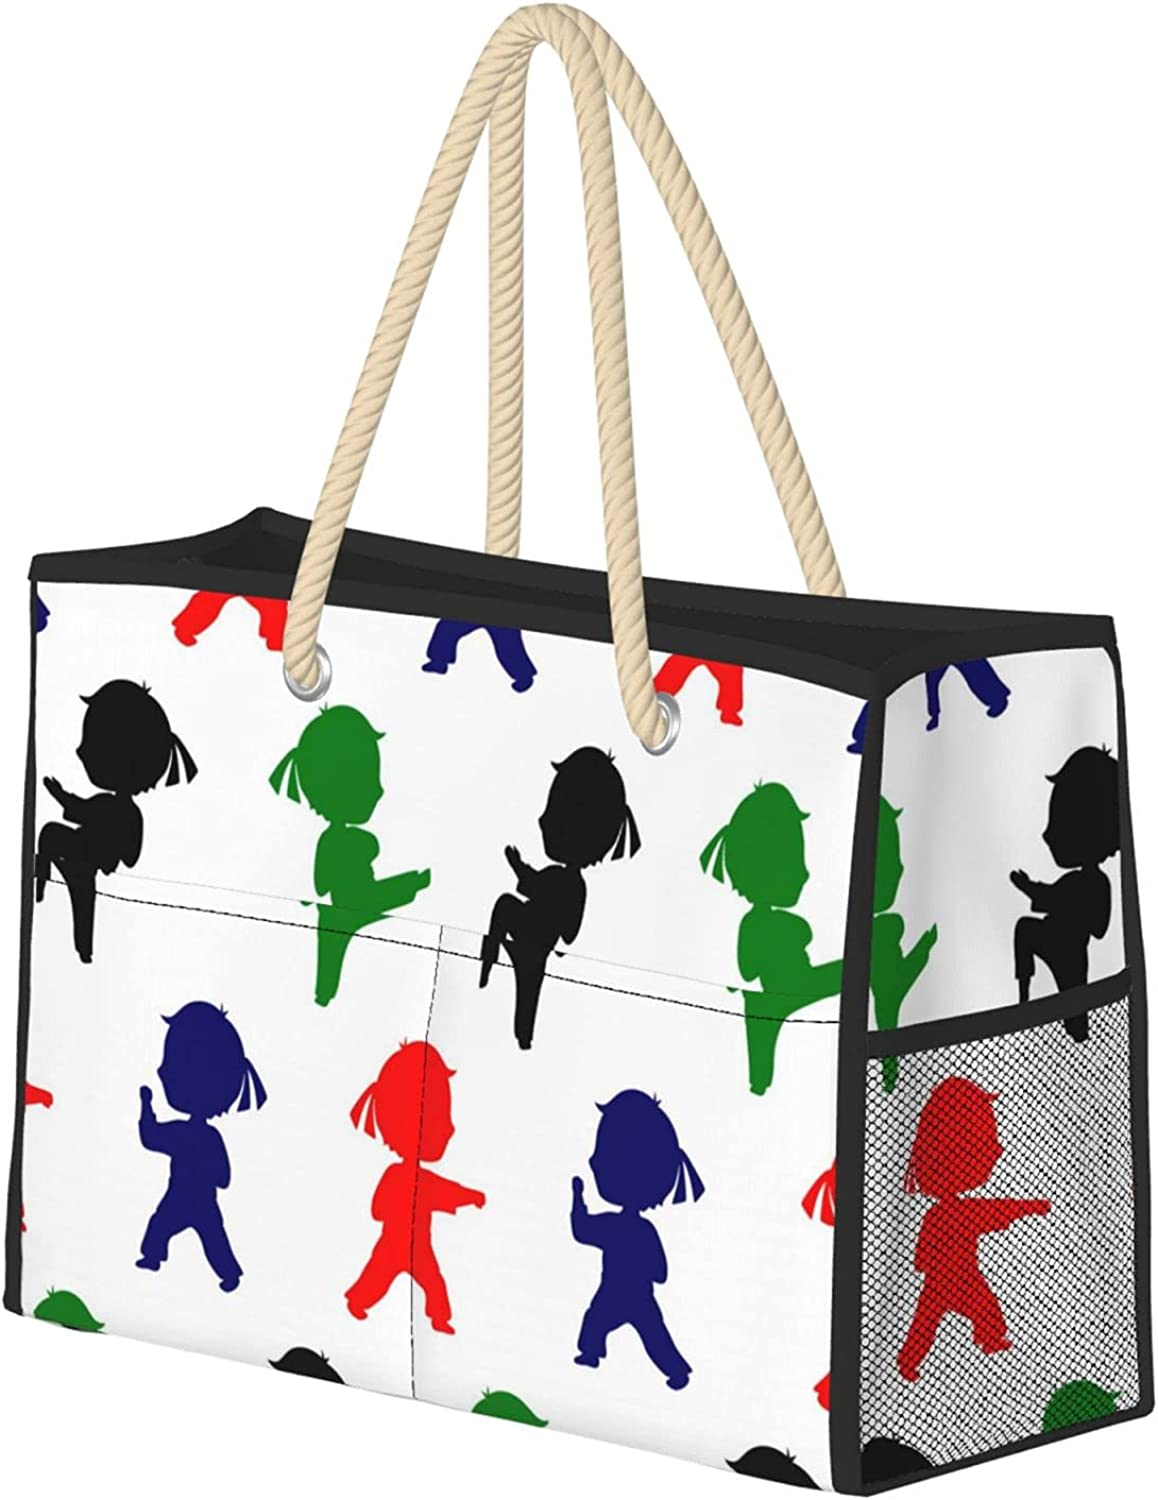 Martial Arts Women Indianapolis Mall Beach Bag Reusable OFFer Utility Tote Travel Gr